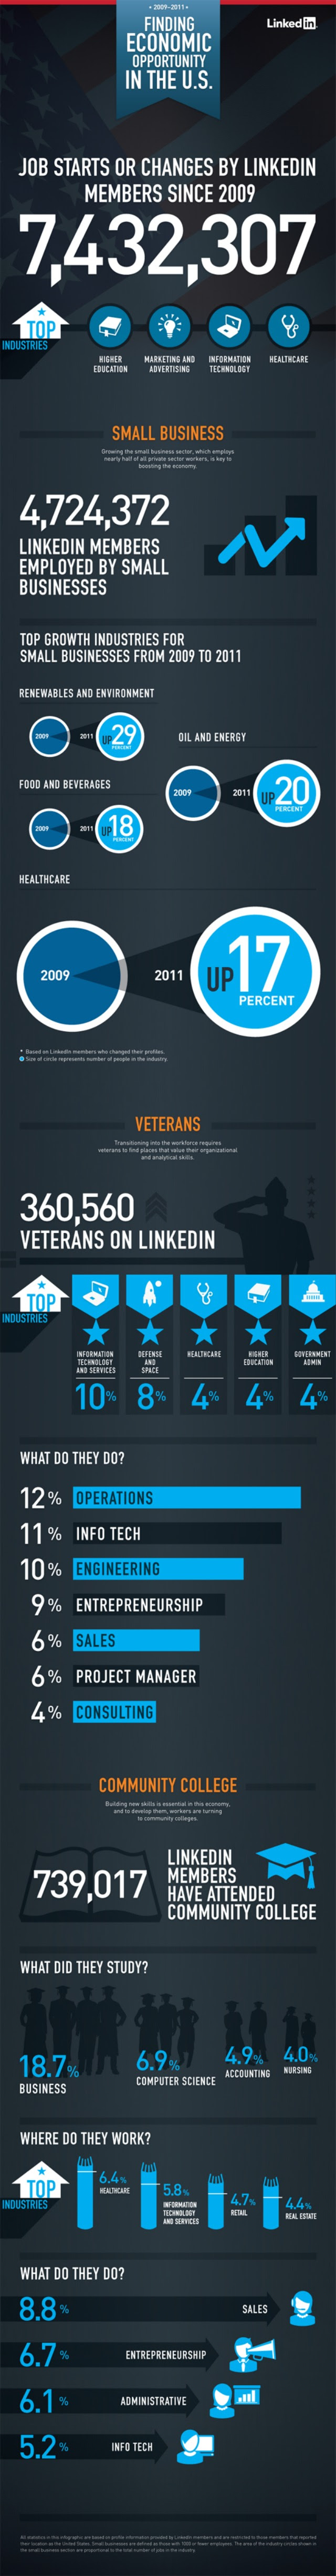 LinkedIn Usage Trends, Users statistics